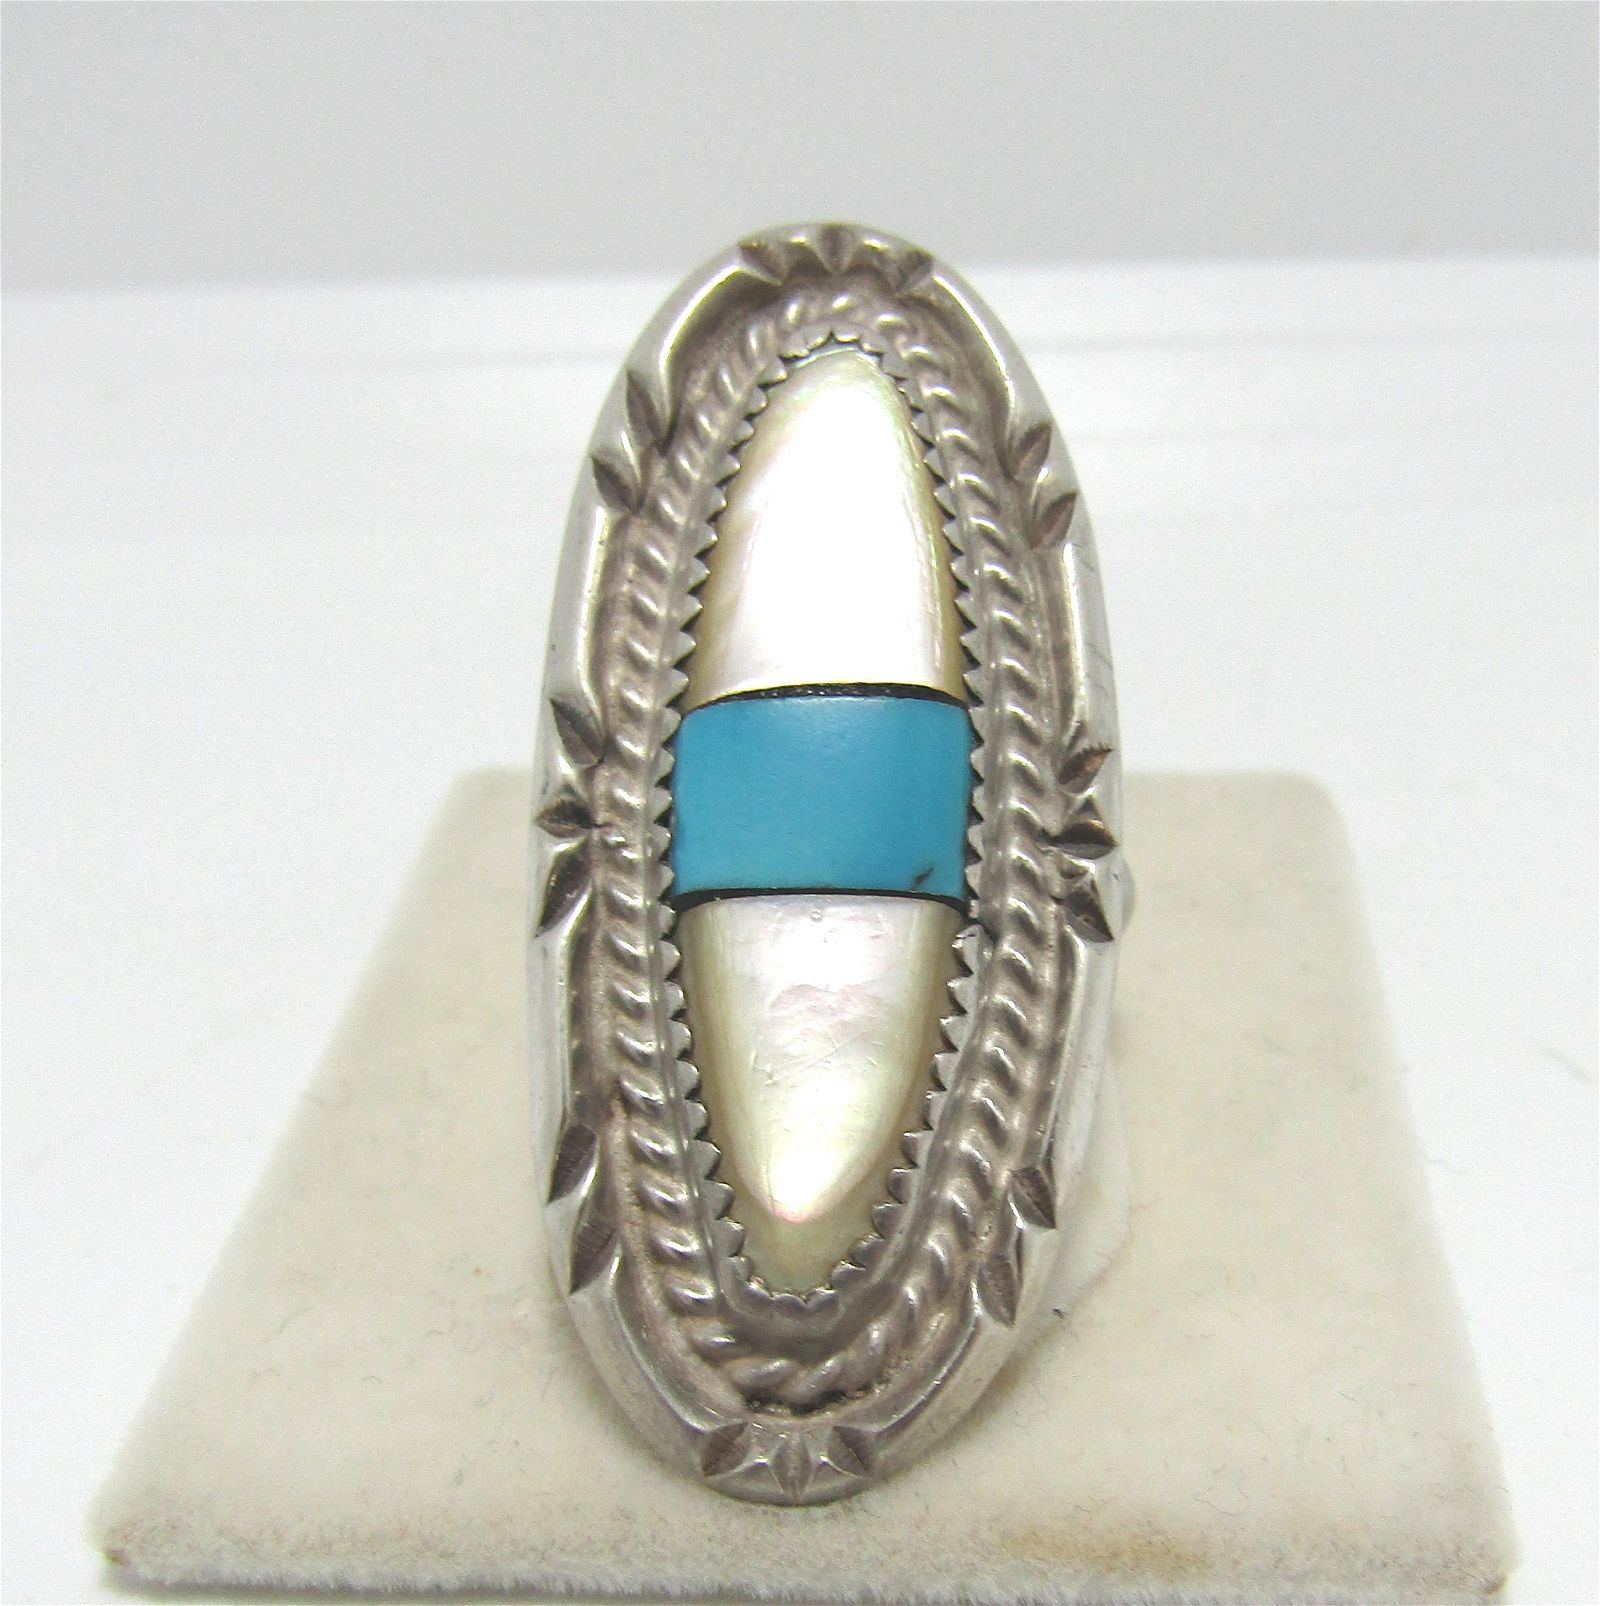 ZUNI INLAID TURQUOISE STERLING SILVER RING